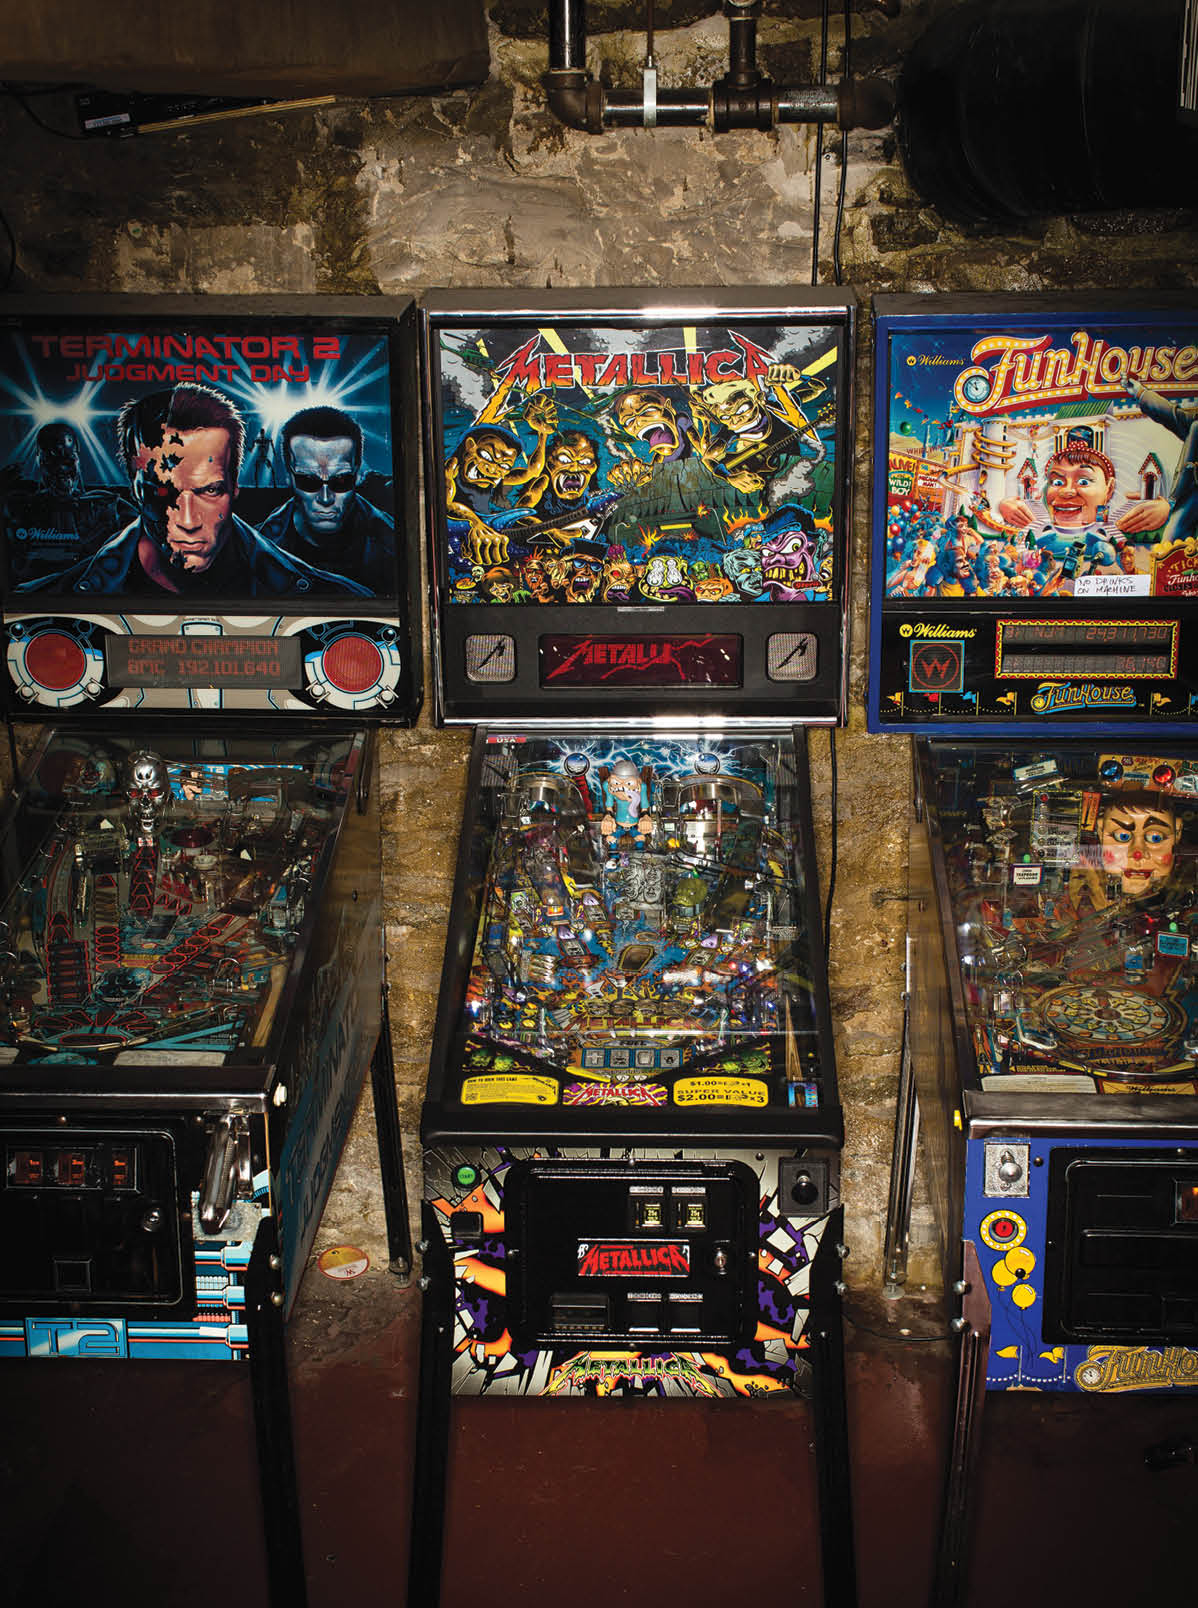 At MOTR Pub in Over-the-Rhine, it's music upstairs, pinball downstairs